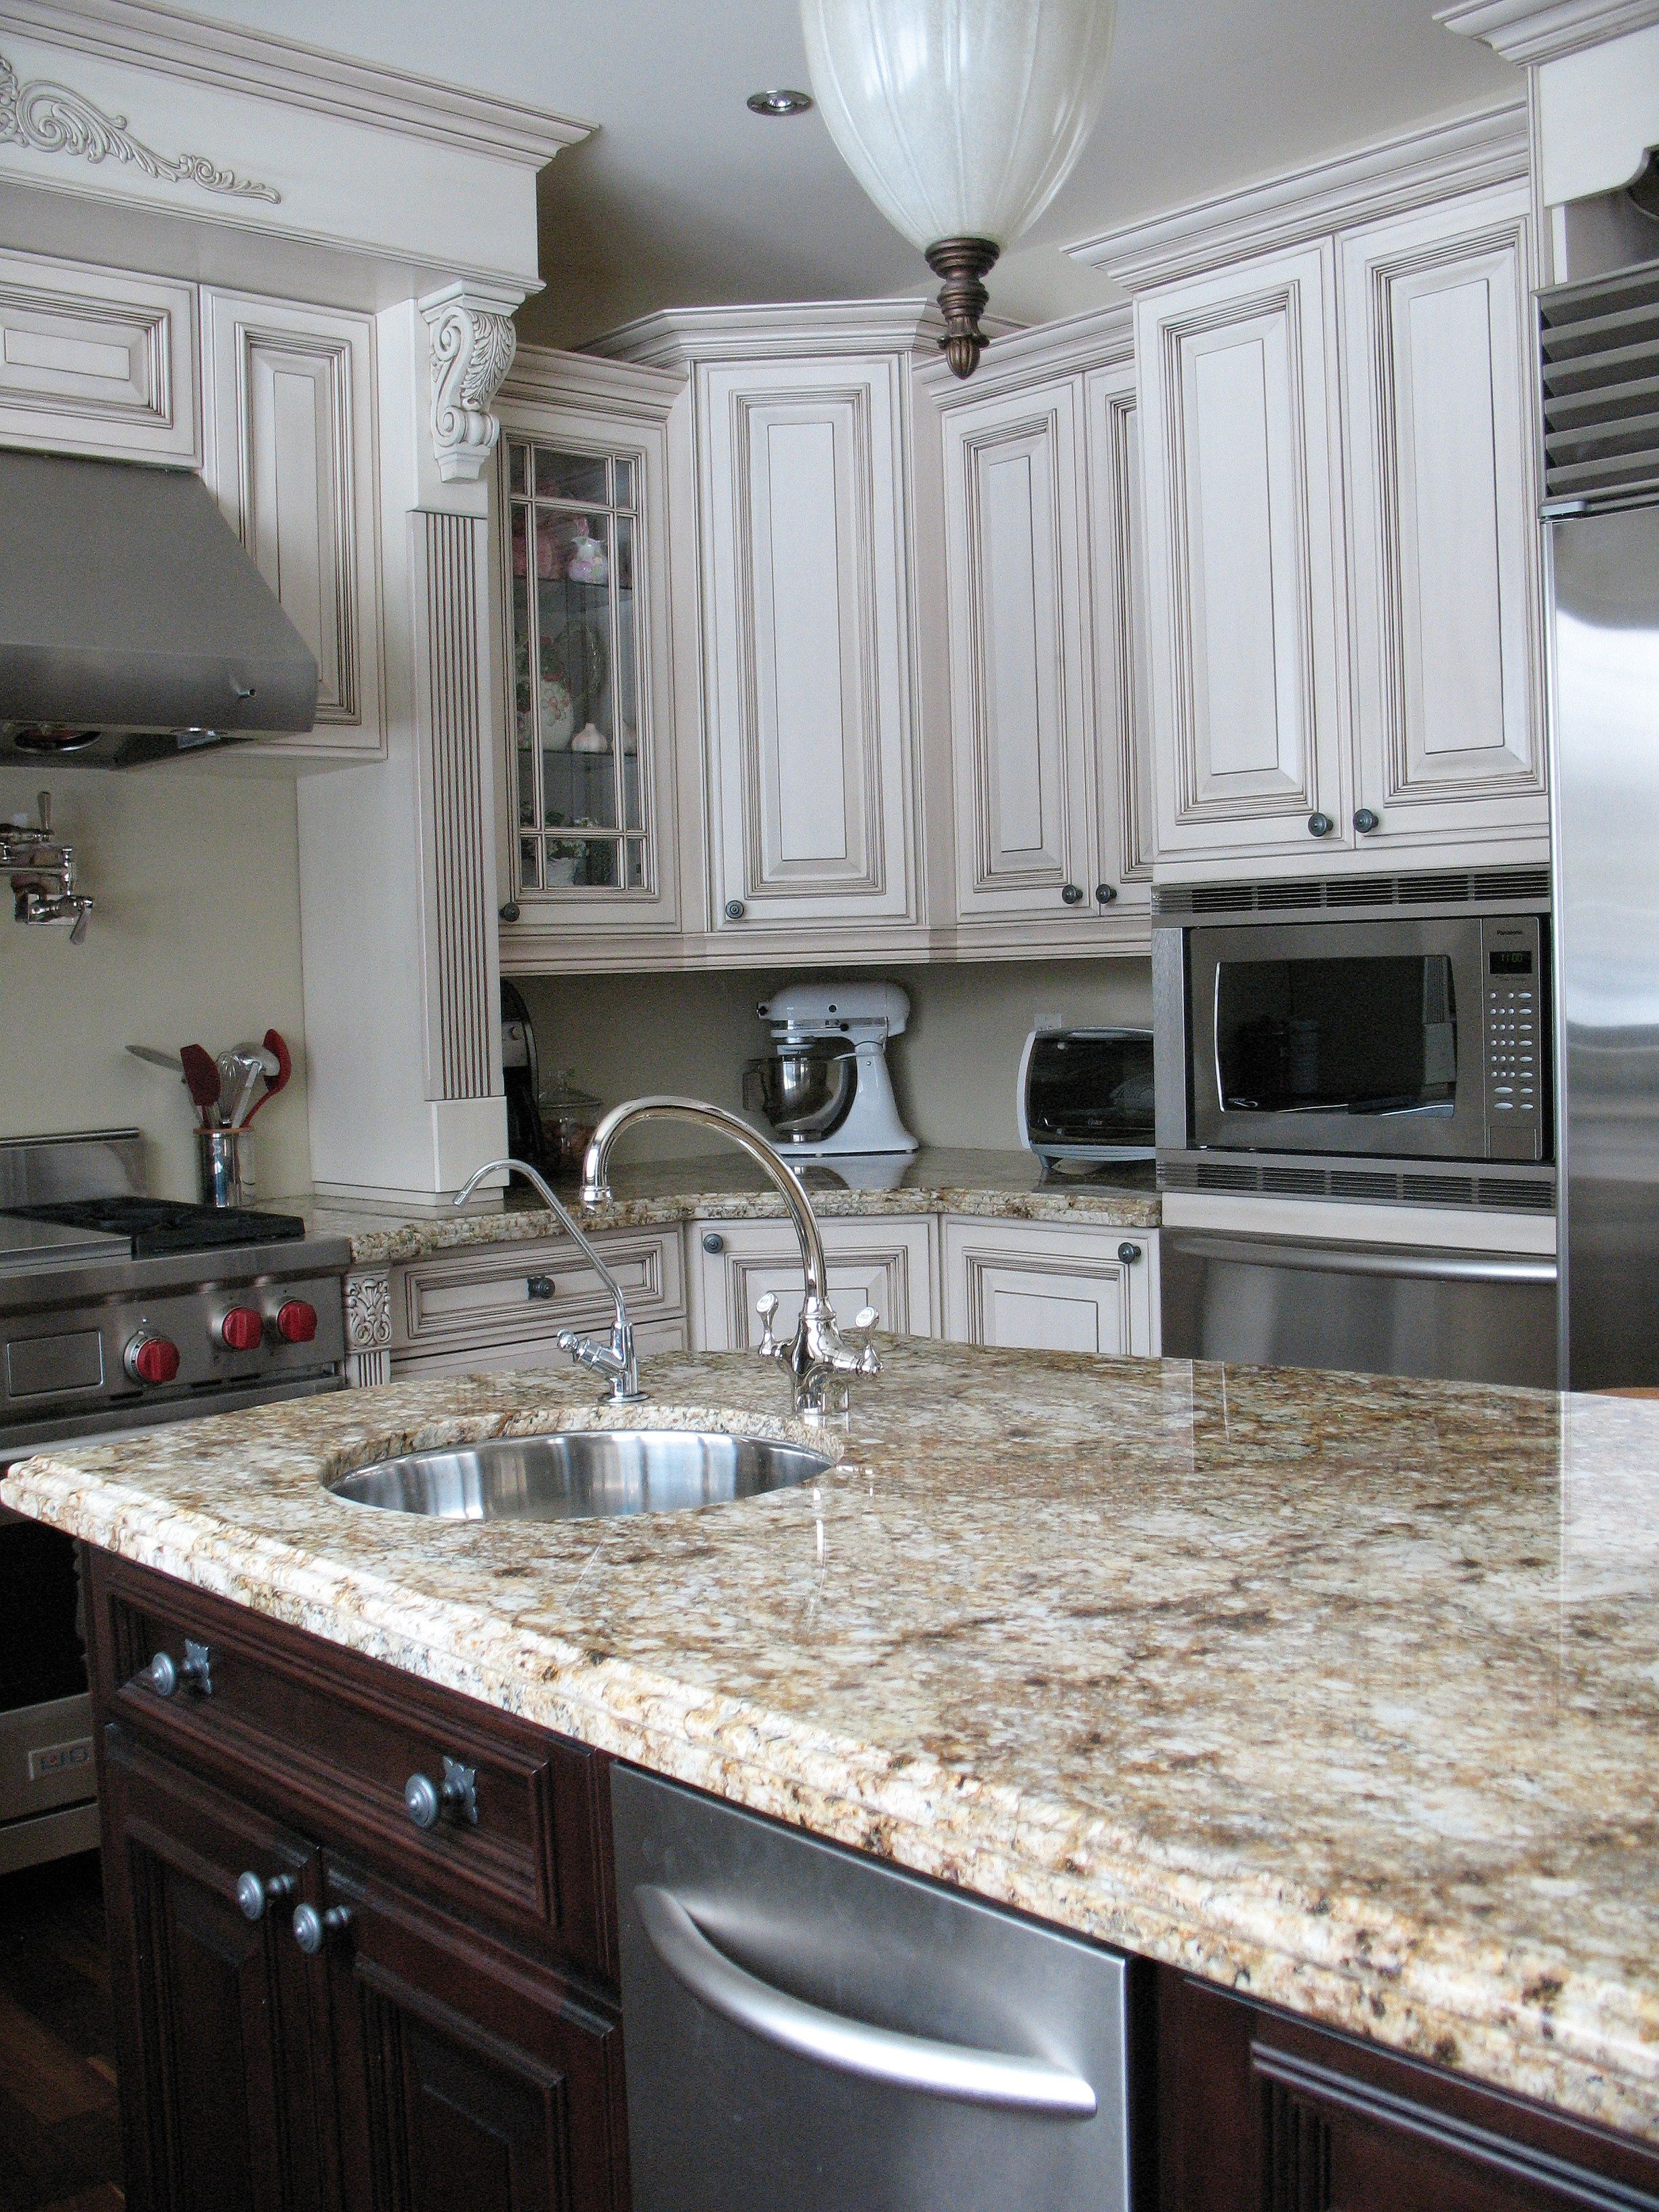 Attractive Uba Tuba Granite With Rich Colors For Kitchen And Bath  Countertops: Granite Counters Uba